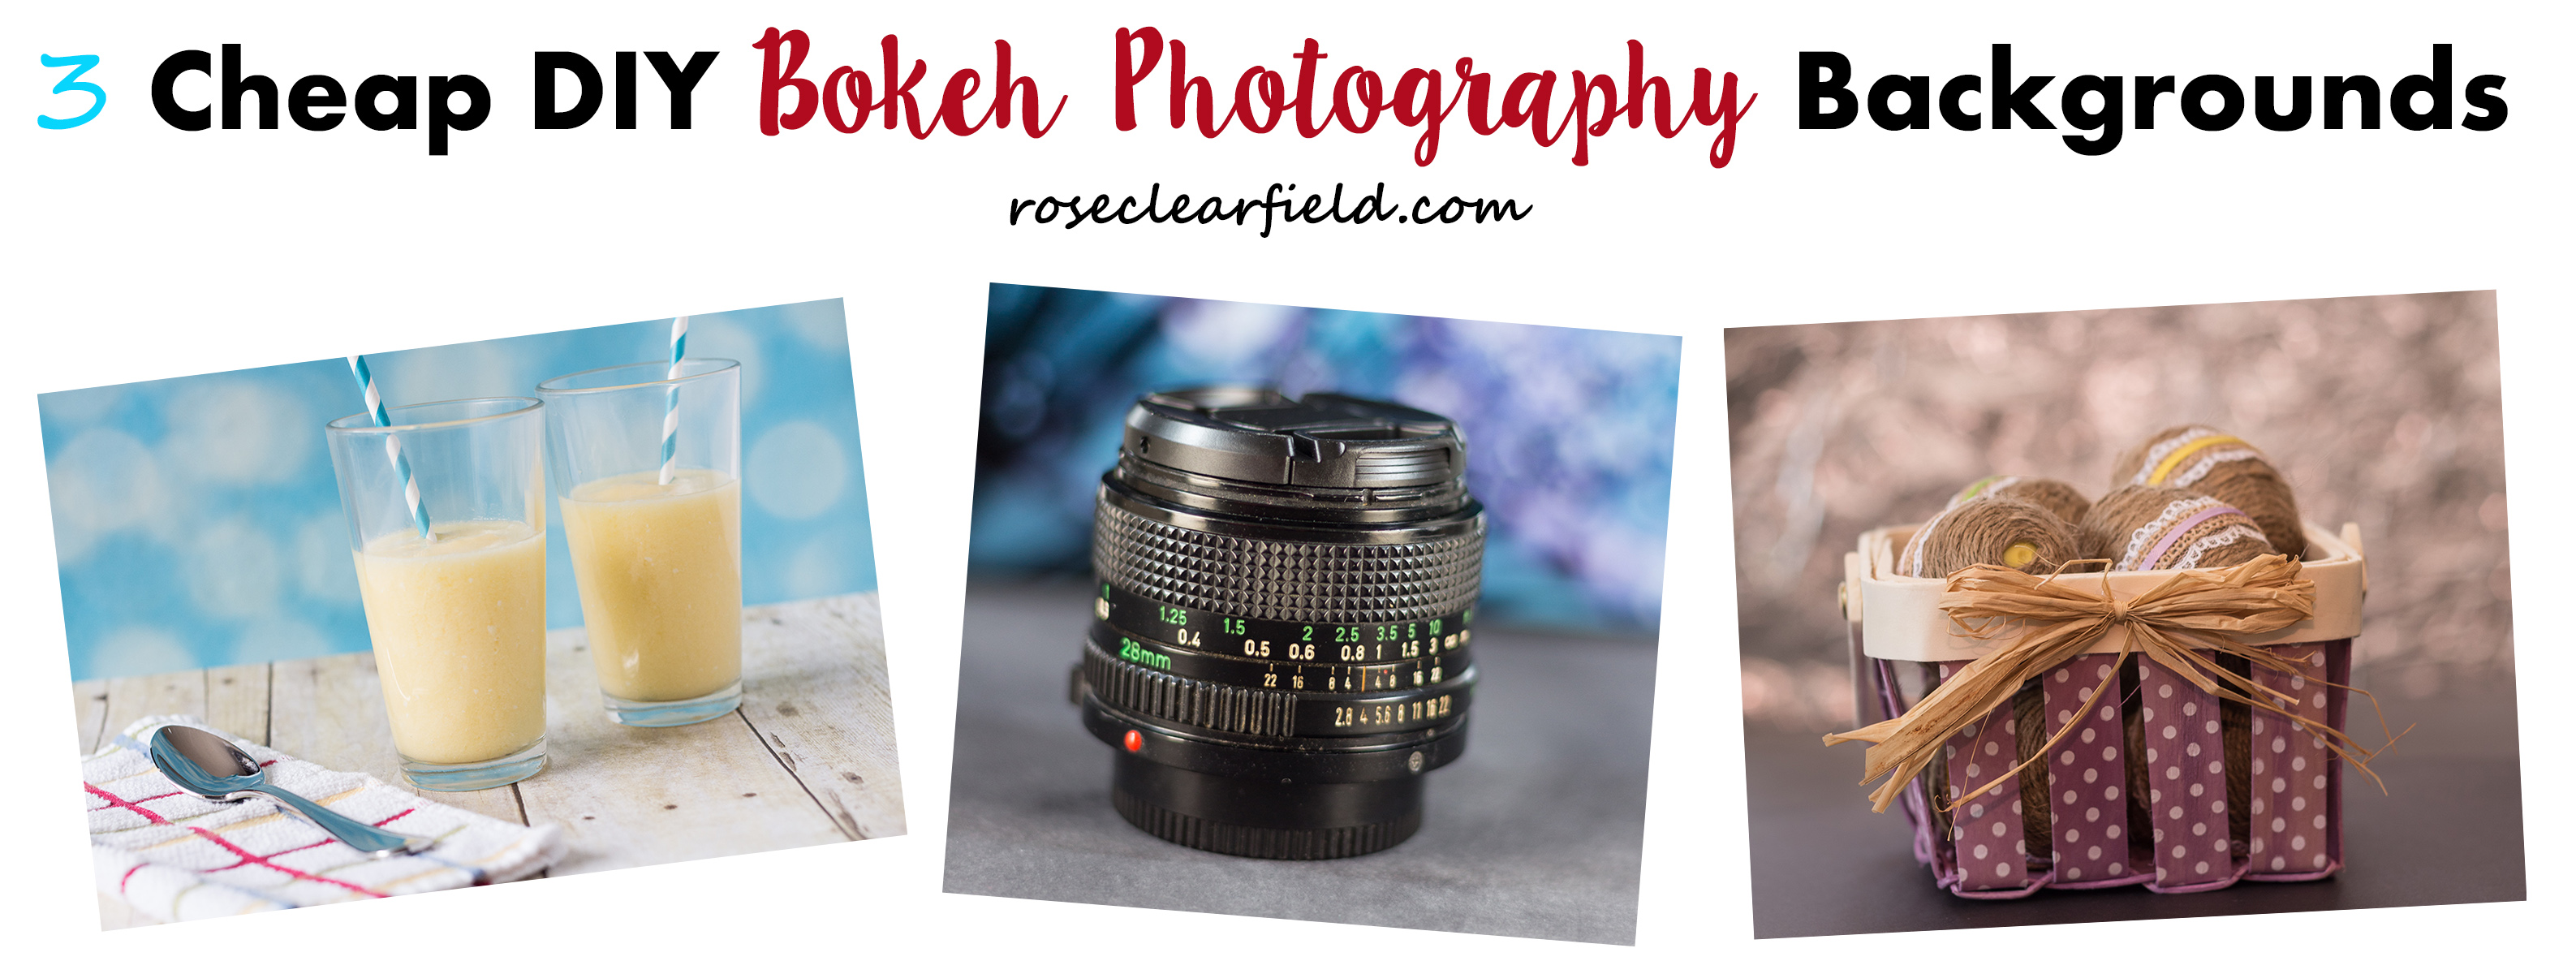 3 Cheap DIY Bokeh Photography Backgrounds | https://www.roseclearfield.com